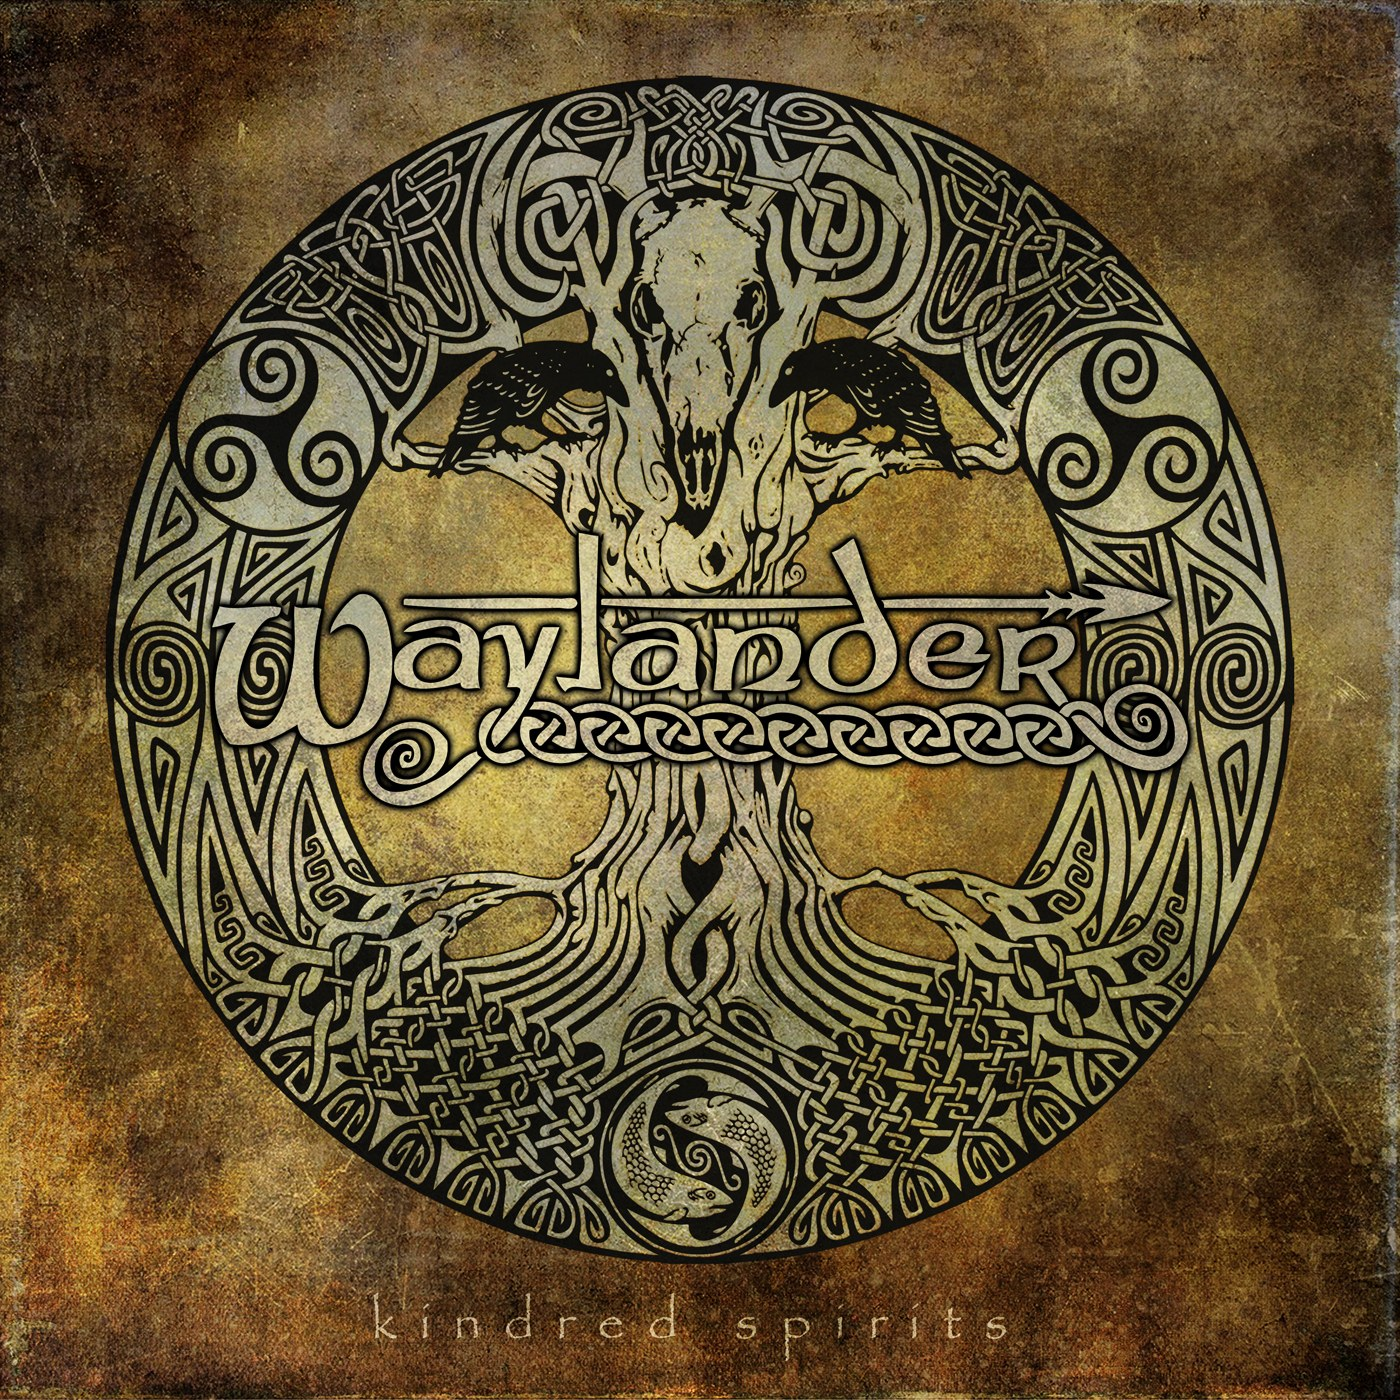 Review for Waylander - Kindred Spirits